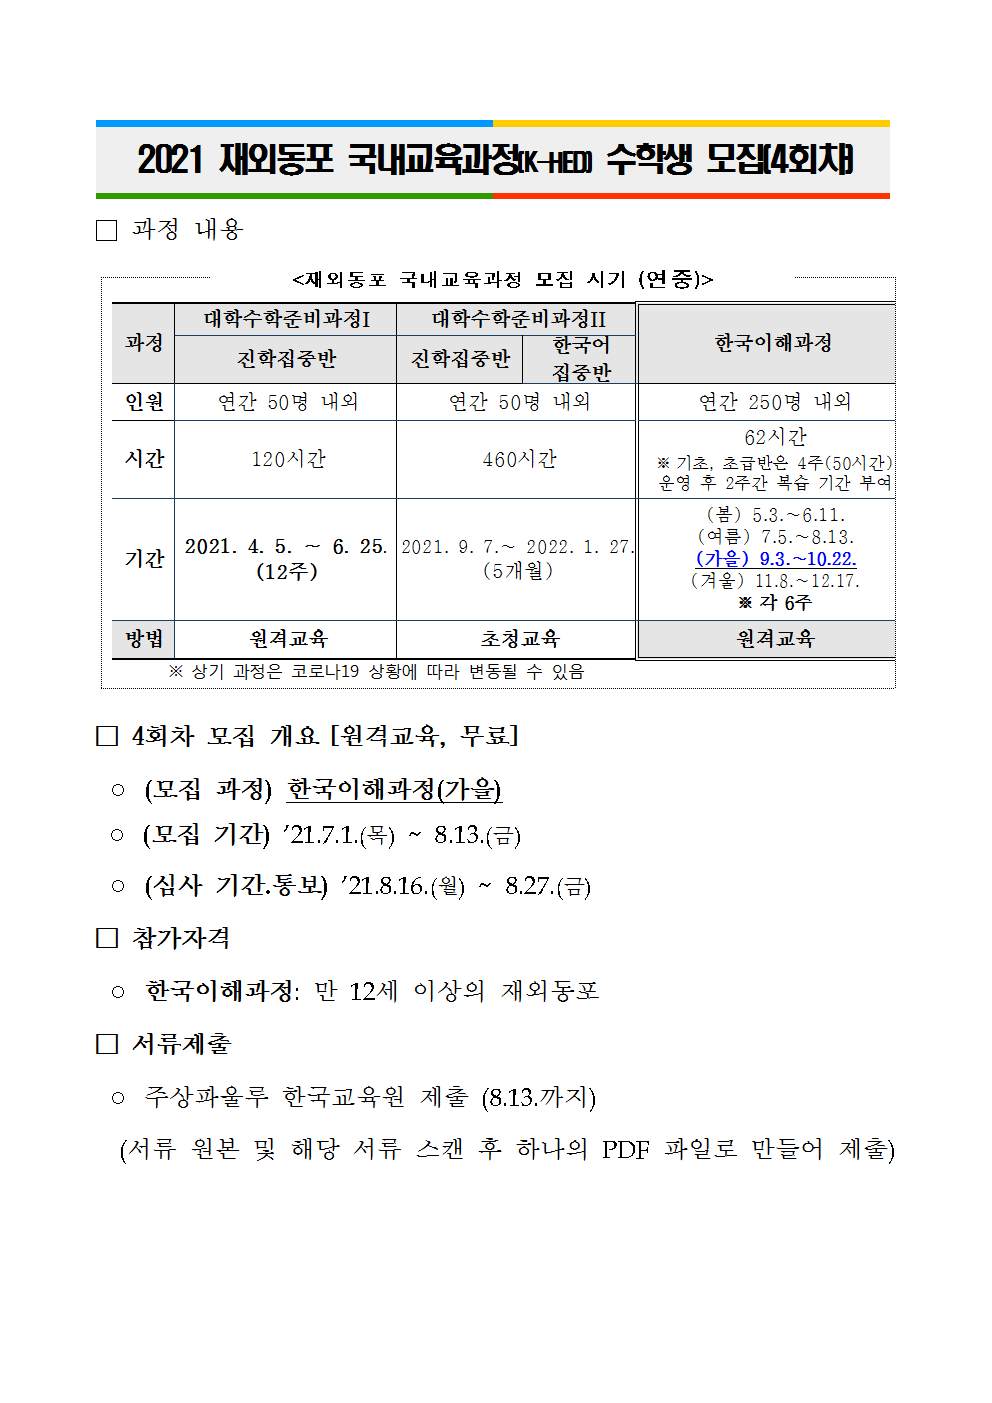 210706 K-HED 4차 모집 공고안001.png